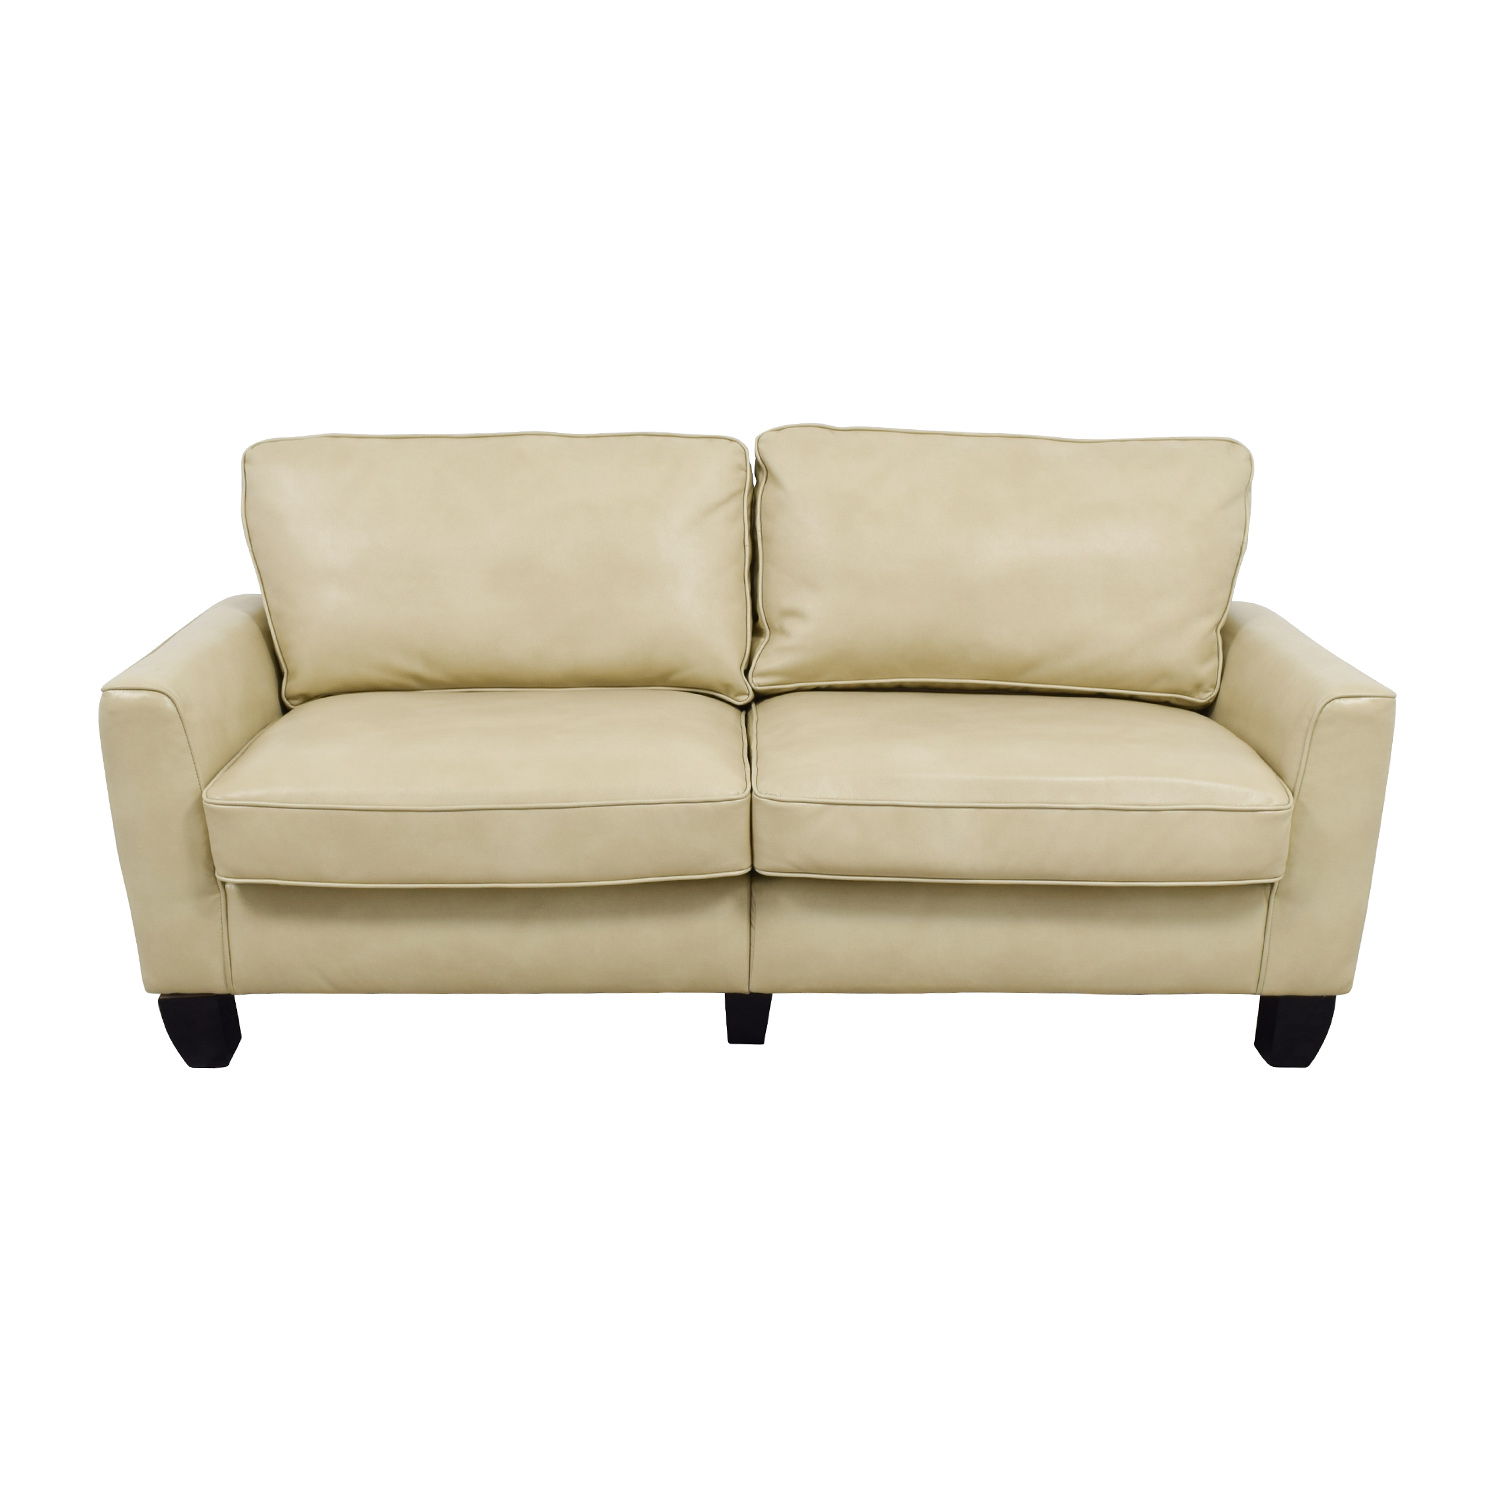 buy Serta Astoria Coated Fabric Sofa in Cannoli Cream Serta Sofas